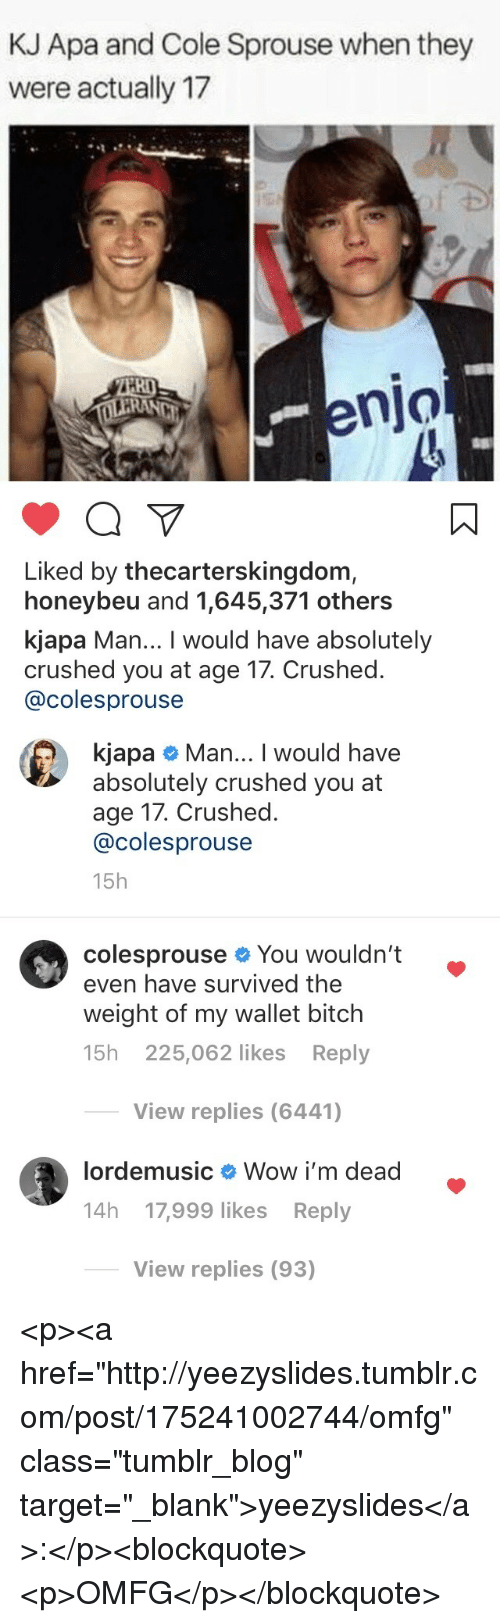 "Bitch, Target, and Tumblr: KJ Apa and Cole Sprouse when they  were actually 17  RI  enjo  Liked by thecarterskingdom,  honeybeu and 1,645,371 others  kjapa Man... I would have absolutely  crushed you at age 17. Crushed.  @colesprouse   kjapa # Man I would have  absolutely crushed you at  age 17. Crushed.  @colesprouse  15h  colesprouse You wouldn't .  even have survived the  weight of my wallet bitch  15h 225,062 likes Reply  View replies (6441)  lordemusic  Wow i'm dead  14h 17,999 likes Reply  View replies (93) <p><a href=""http://yeezyslides.tumblr.com/post/175241002744/omfg"" class=""tumblr_blog"" target=""_blank"">yeezyslides</a>:</p><blockquote><p>OMFG</p></blockquote>"